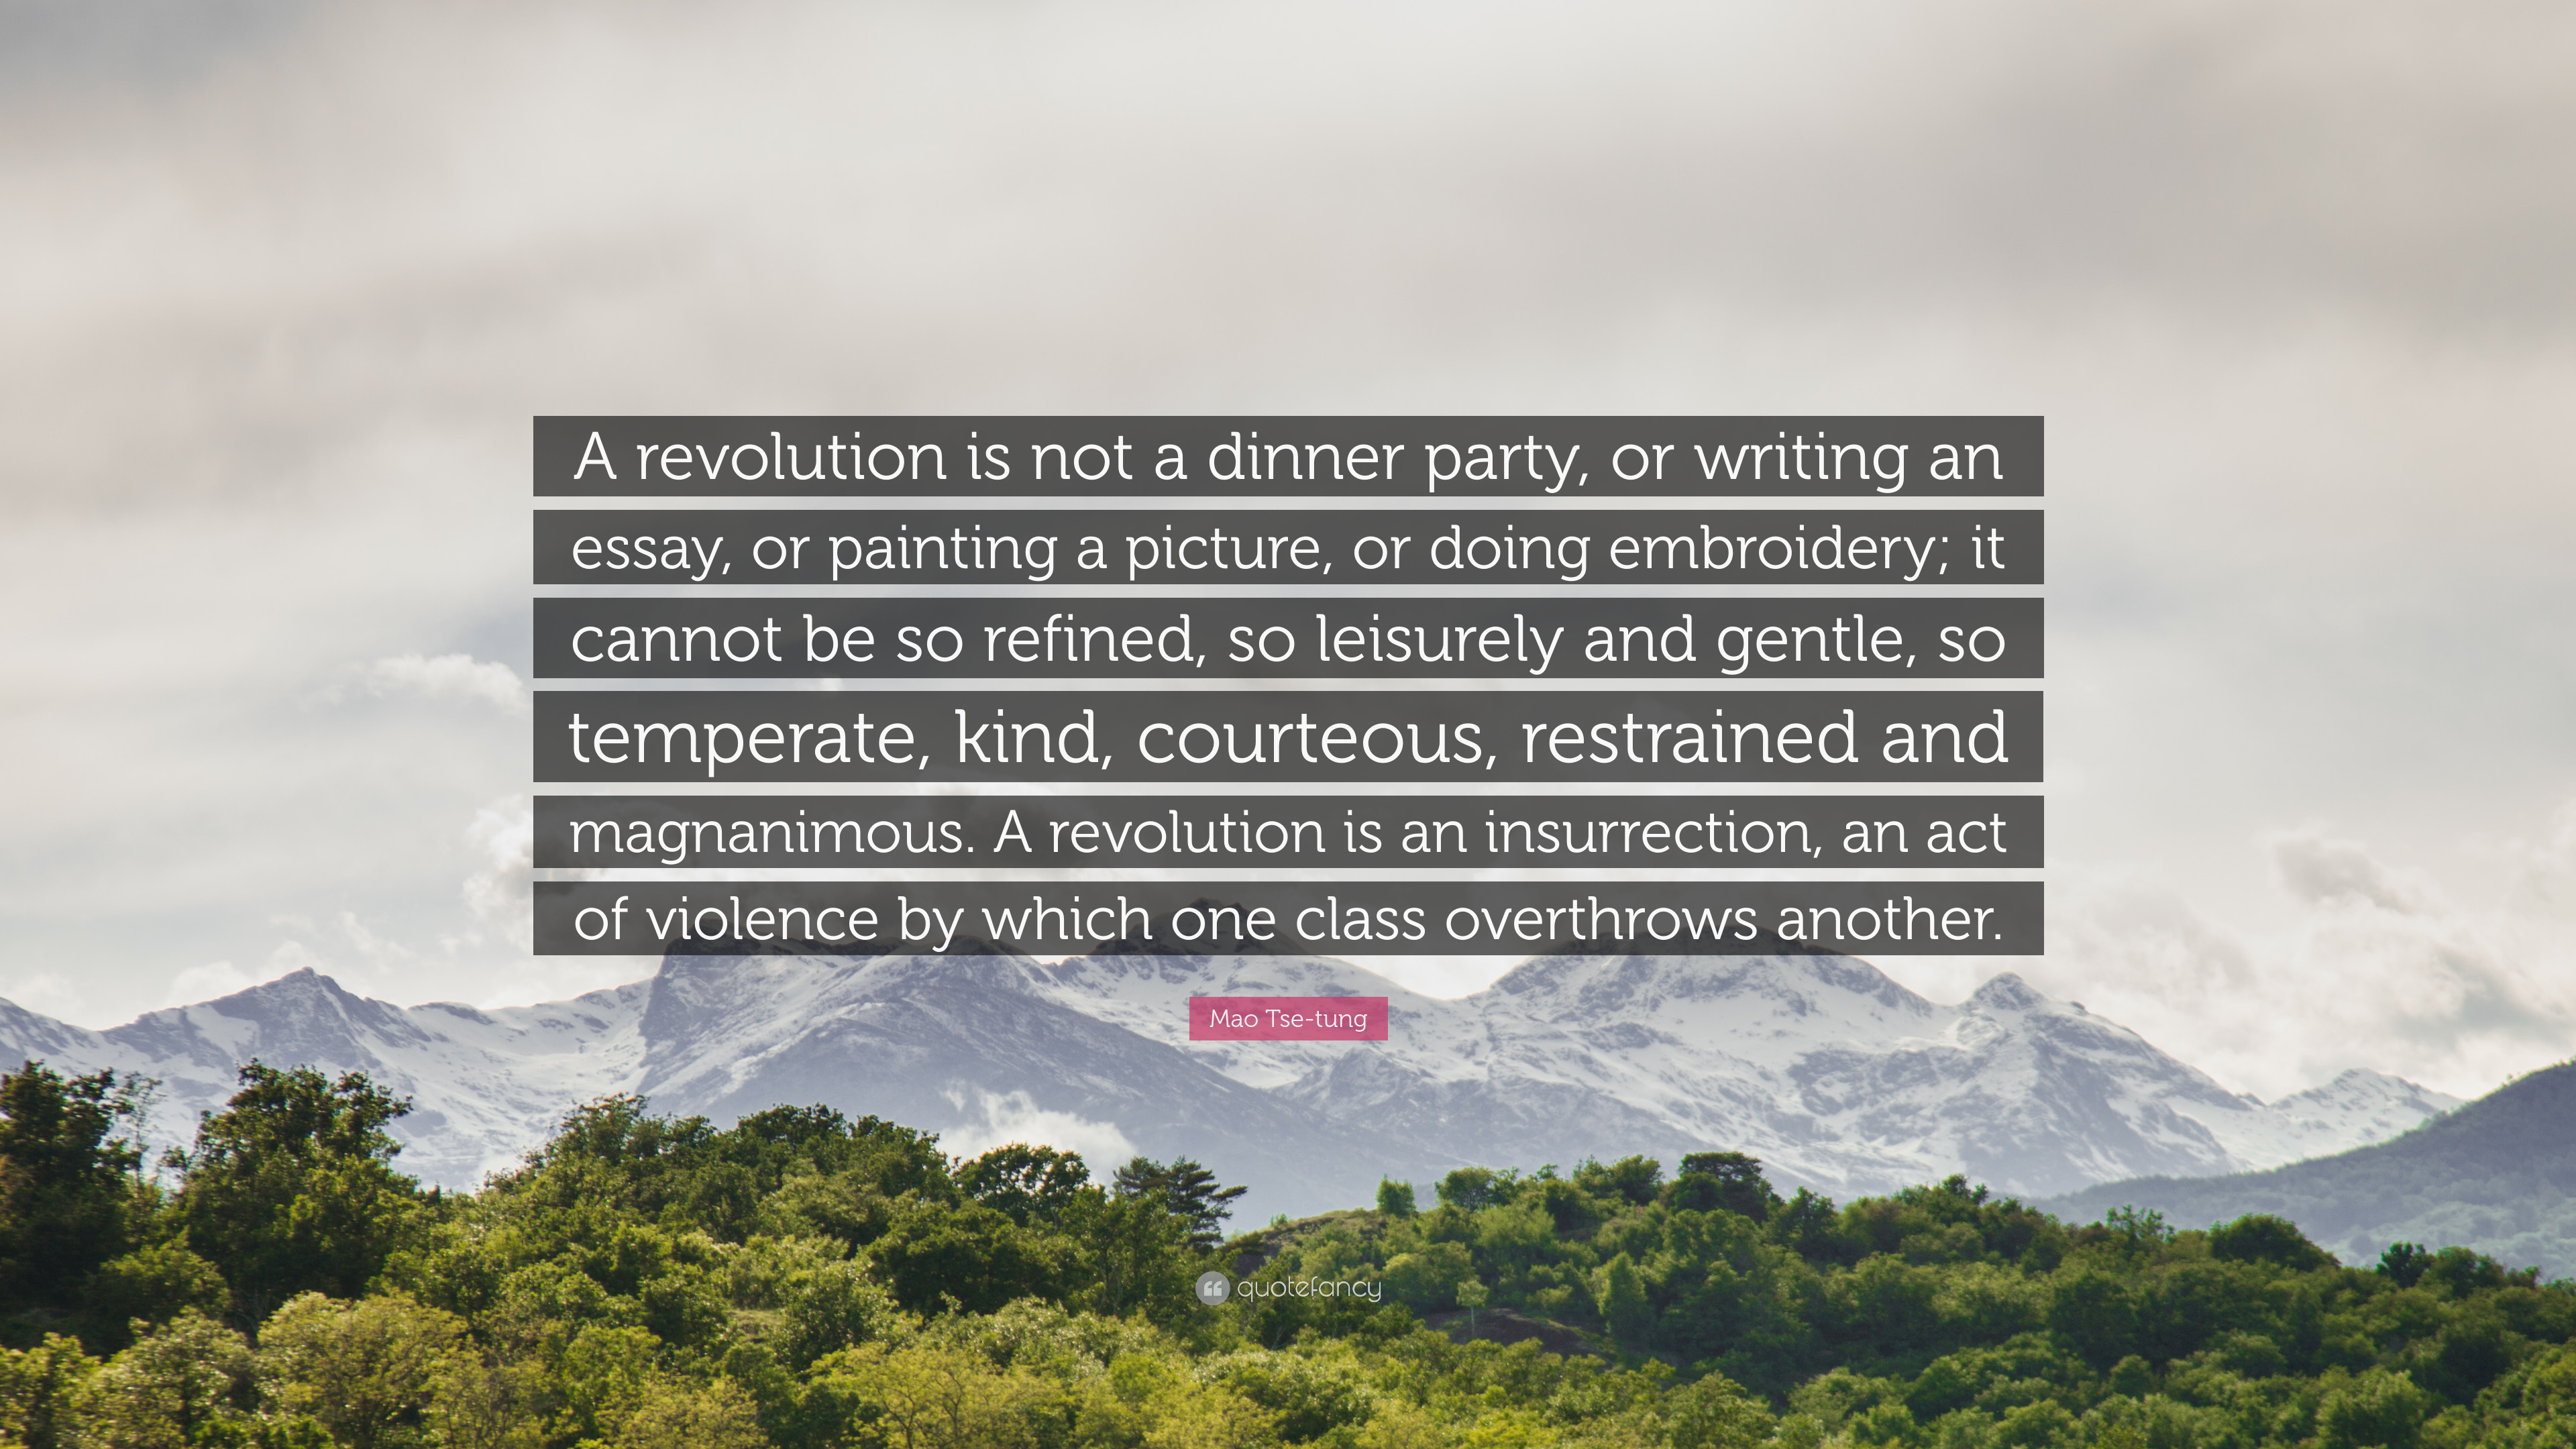 mao tse tung quotes 2  mao tse tung quote ldquoa revolution is not a dinner party or